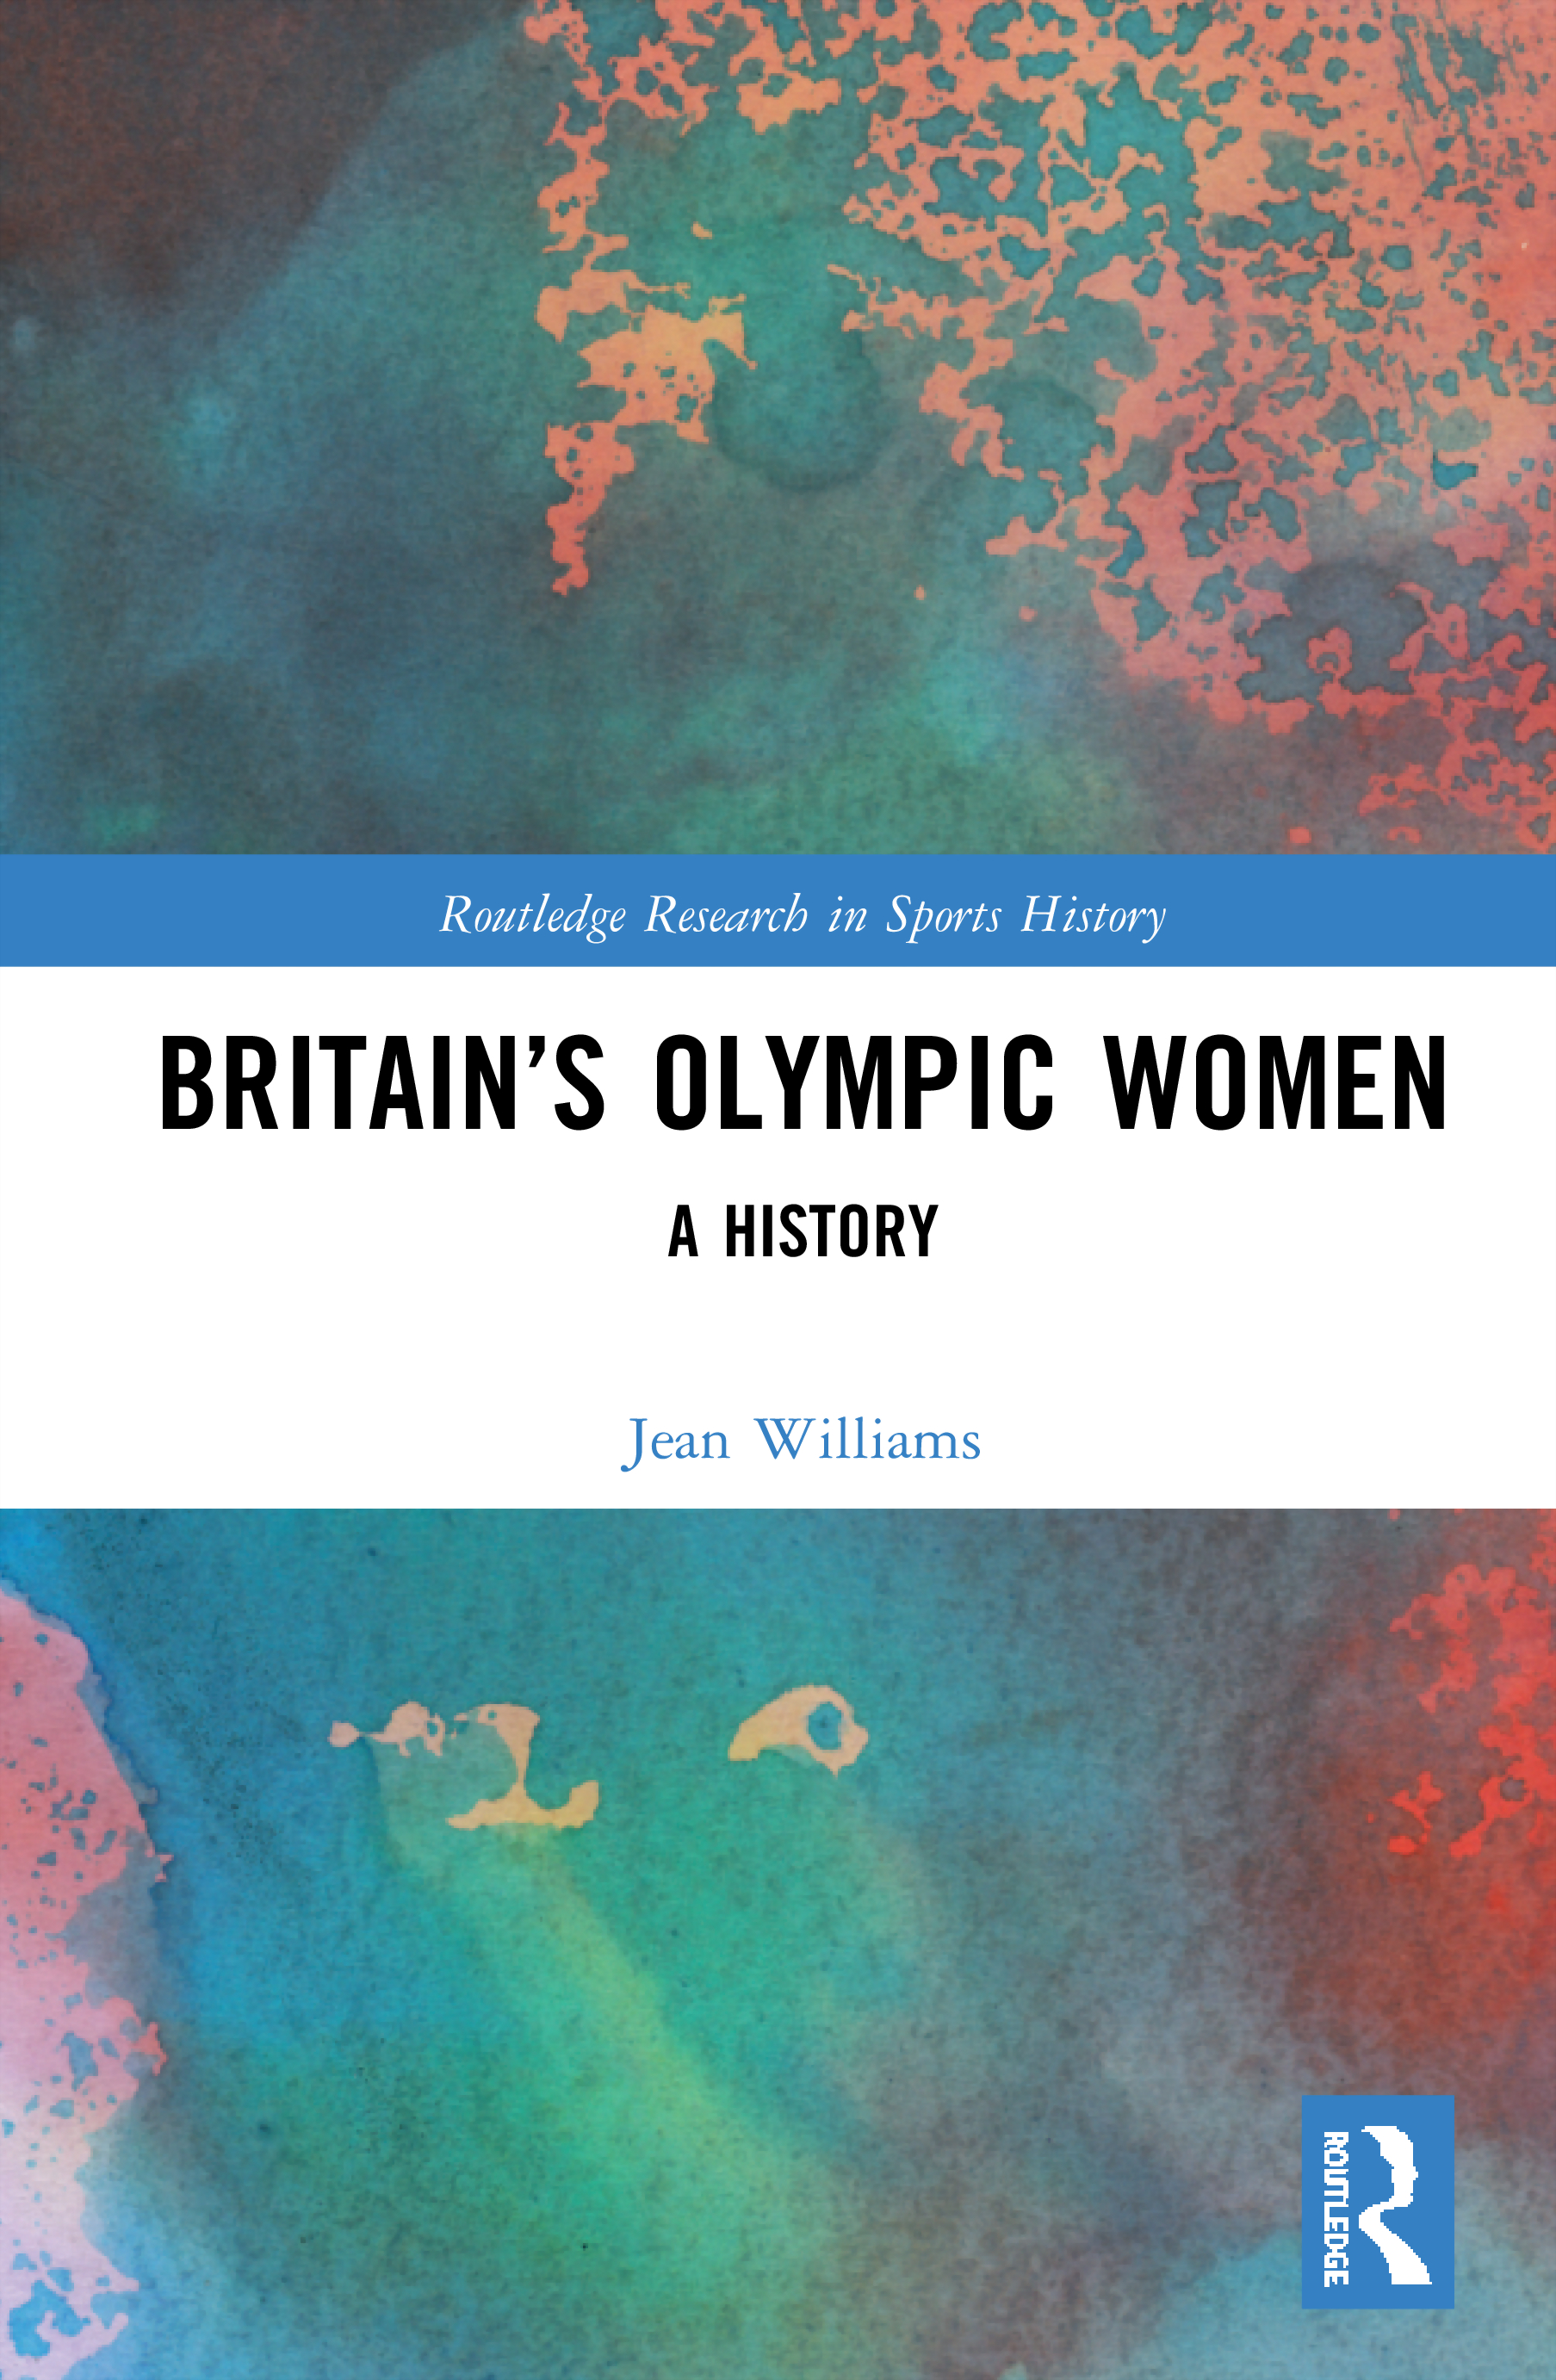 Britain's Olympic Women: A History book cover